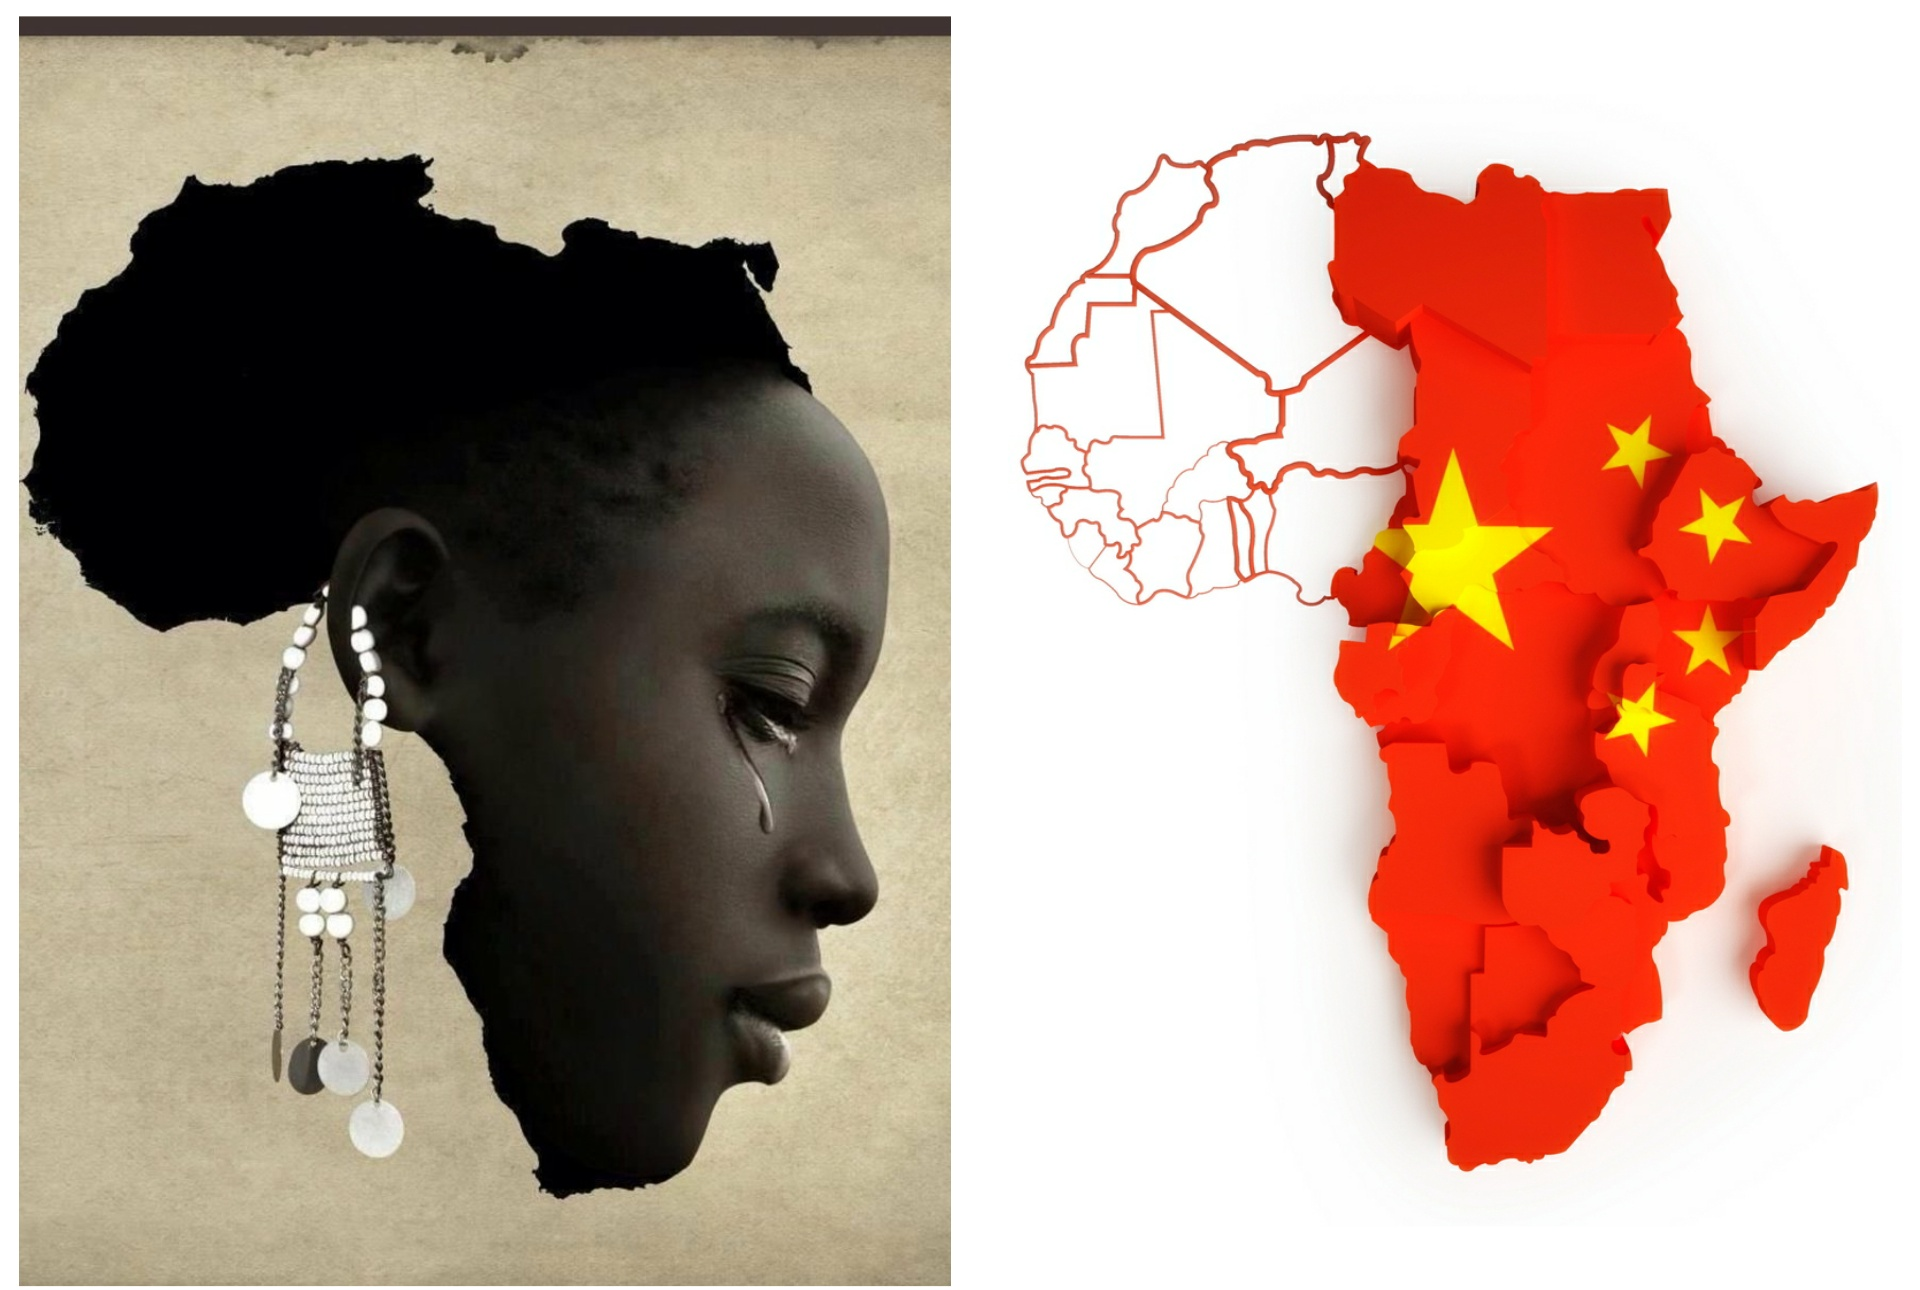 Chinese Espionage Cases In African Nations: Former Head of Organization Backed by Chinese Energy Conglomerate Convicted of International Bribery, Money Laundering Offenses